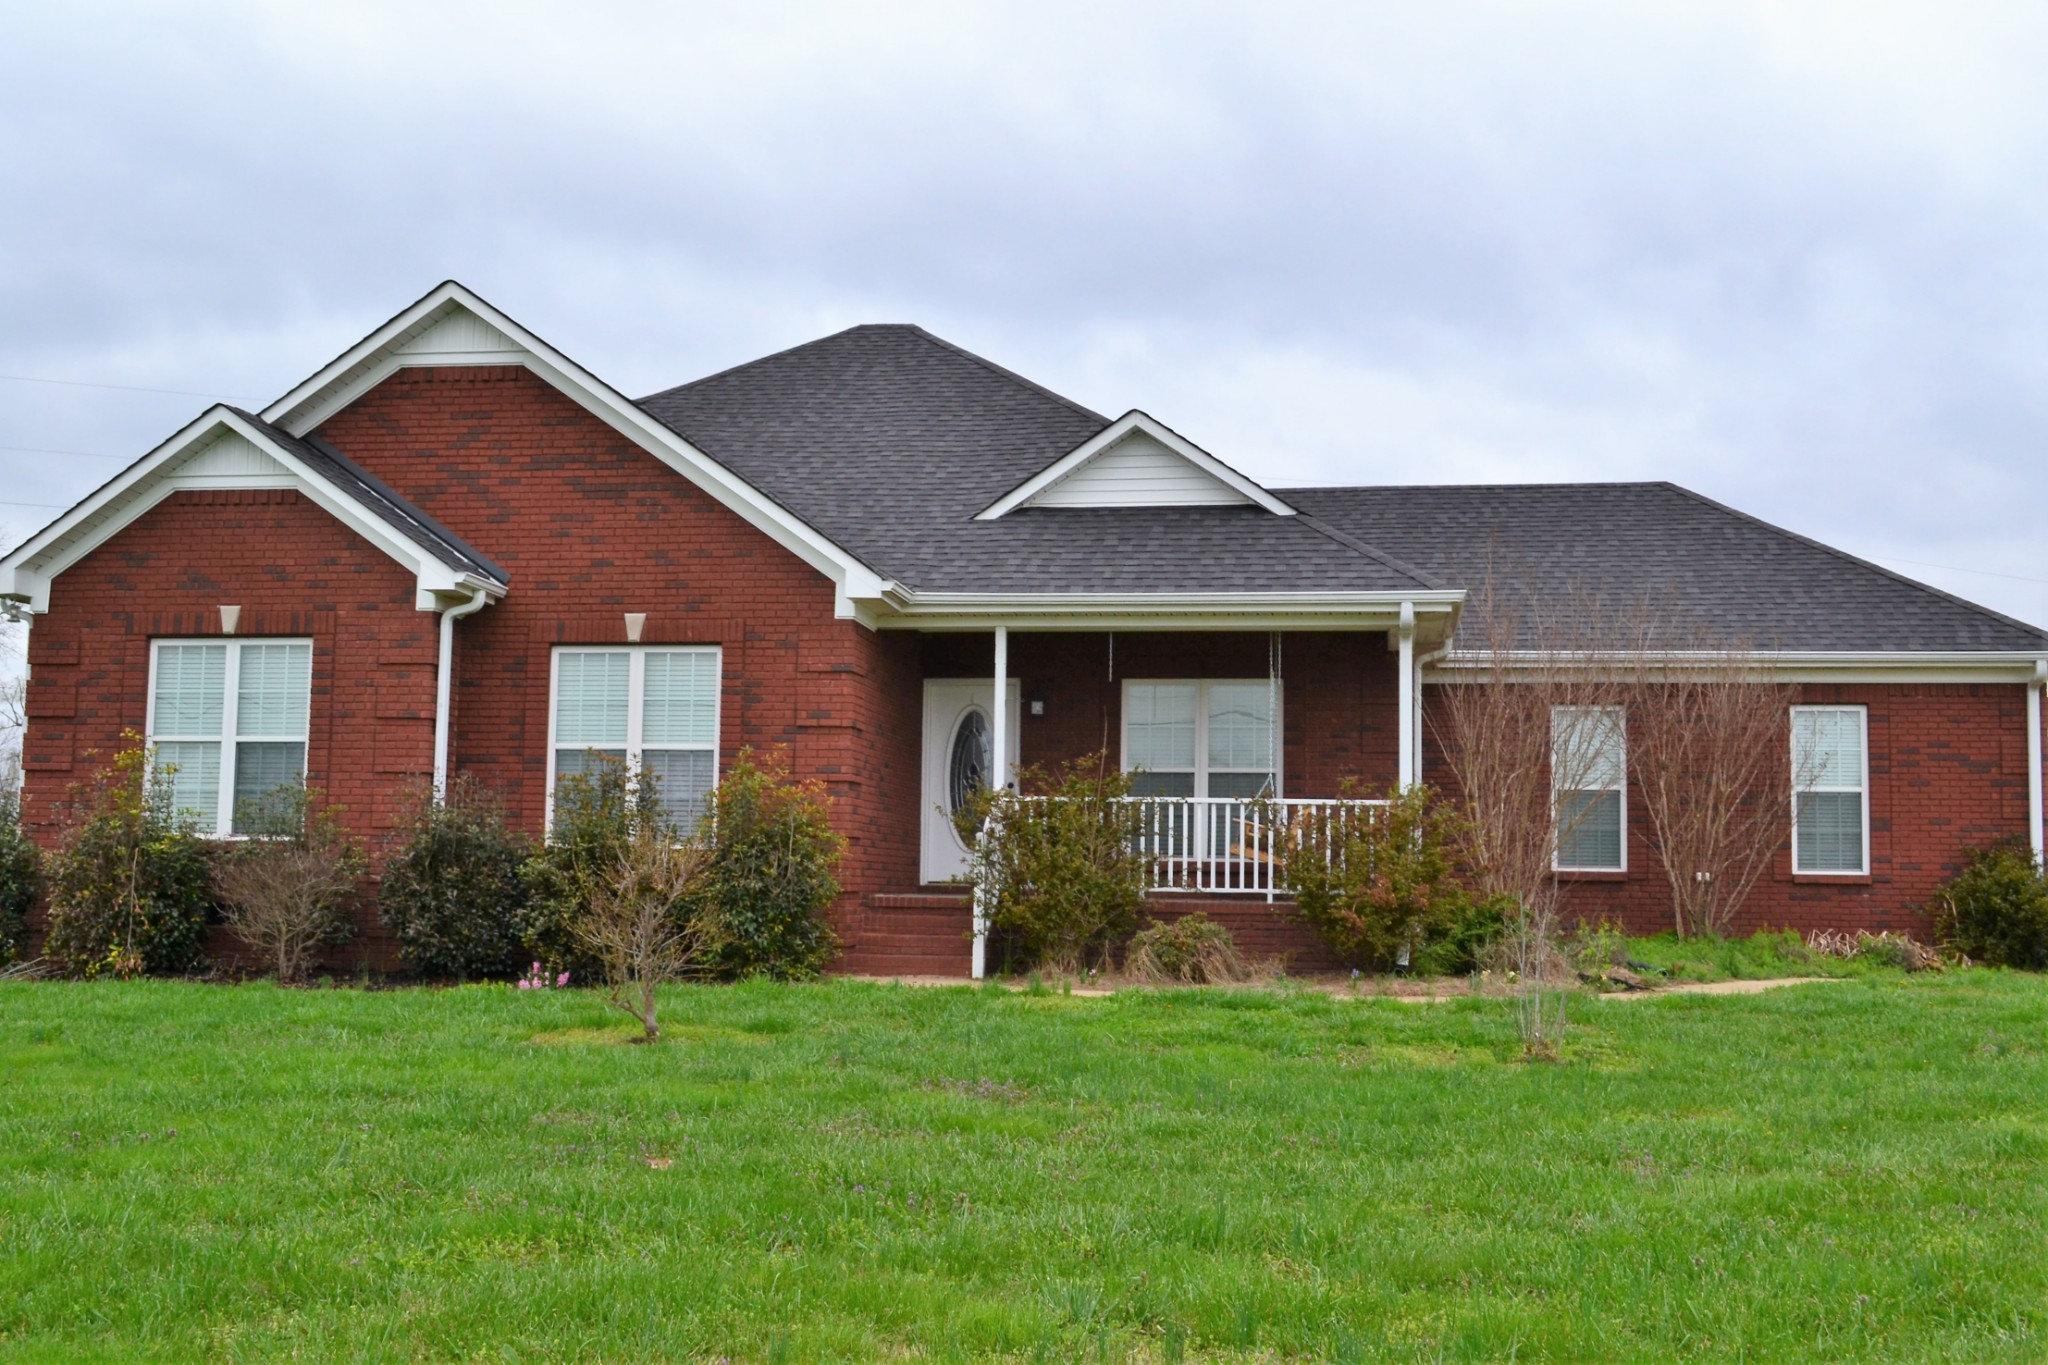 173 Camargo Rd Property Photo - Fayetteville, TN real estate listing